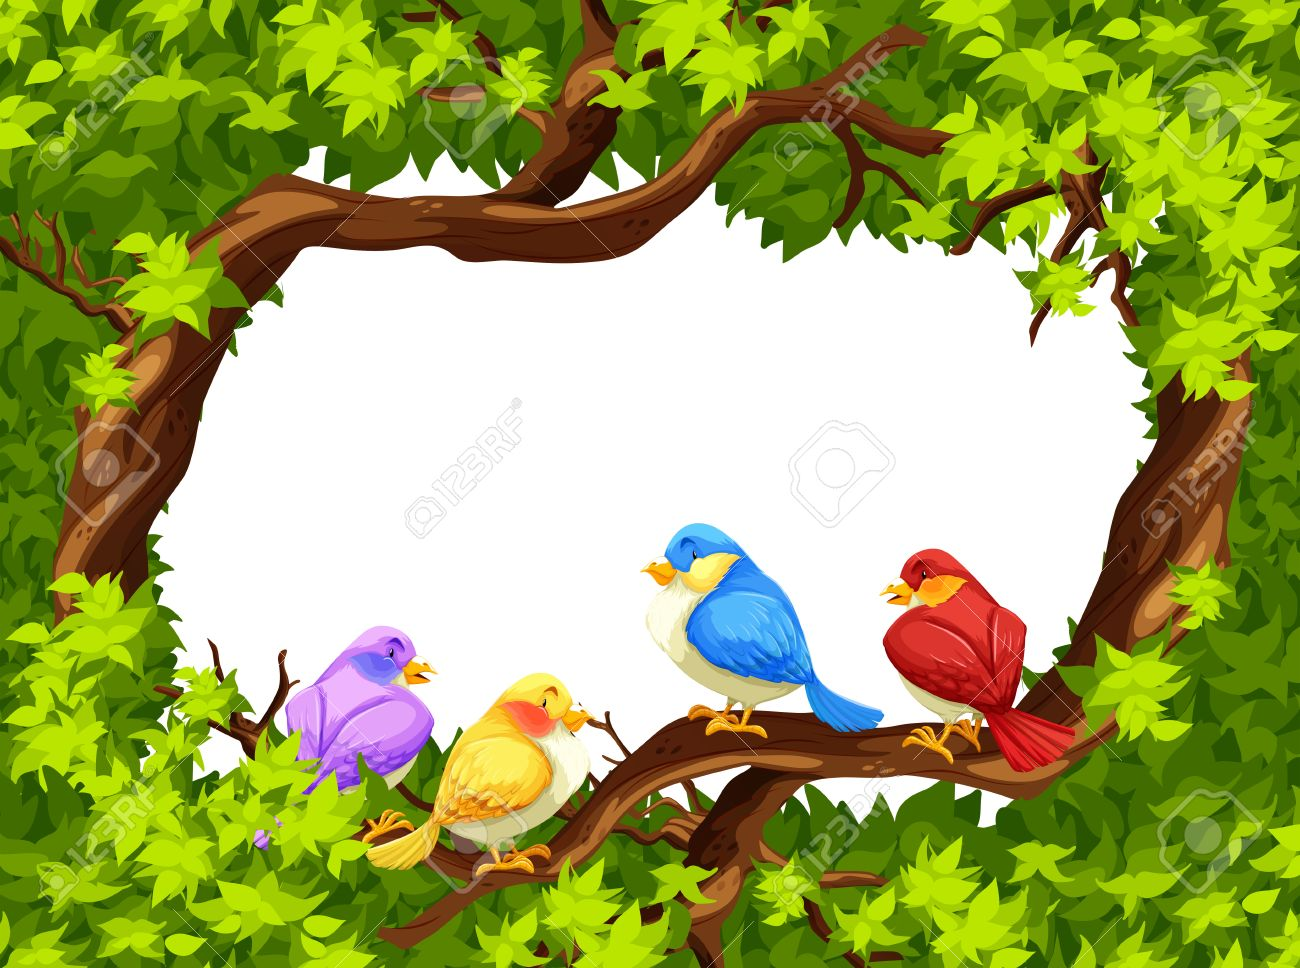 Four birds sitting on a branch of a tree.